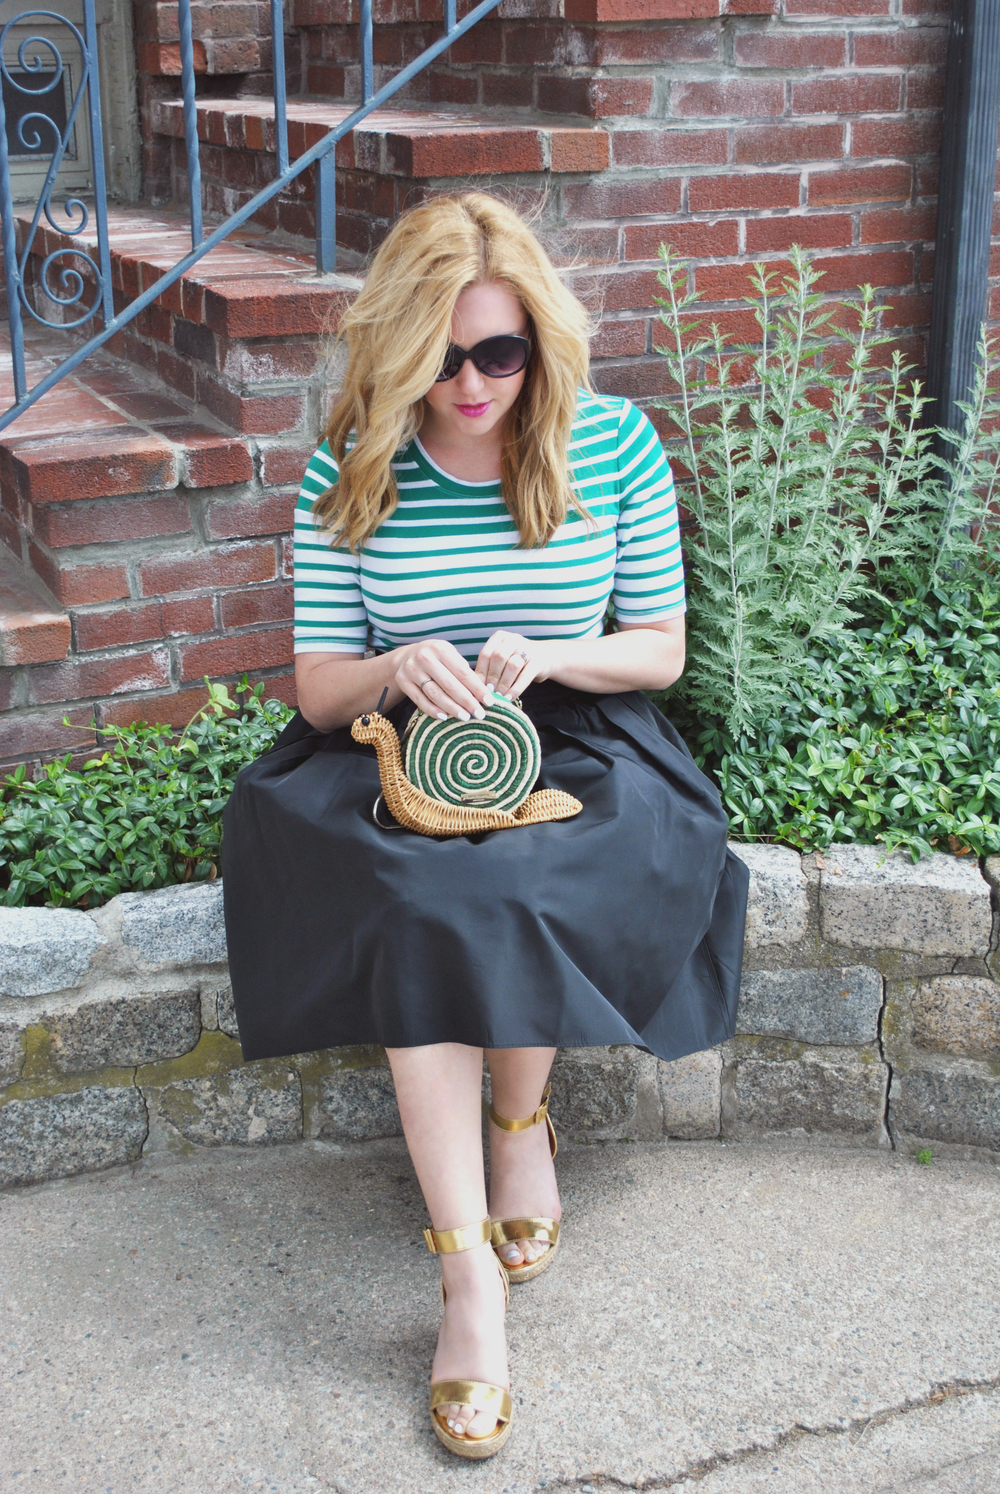 Garden party // preppy outfit // snail purse // kate spade // green stripes // puffy skirt // thoughtfulwish //